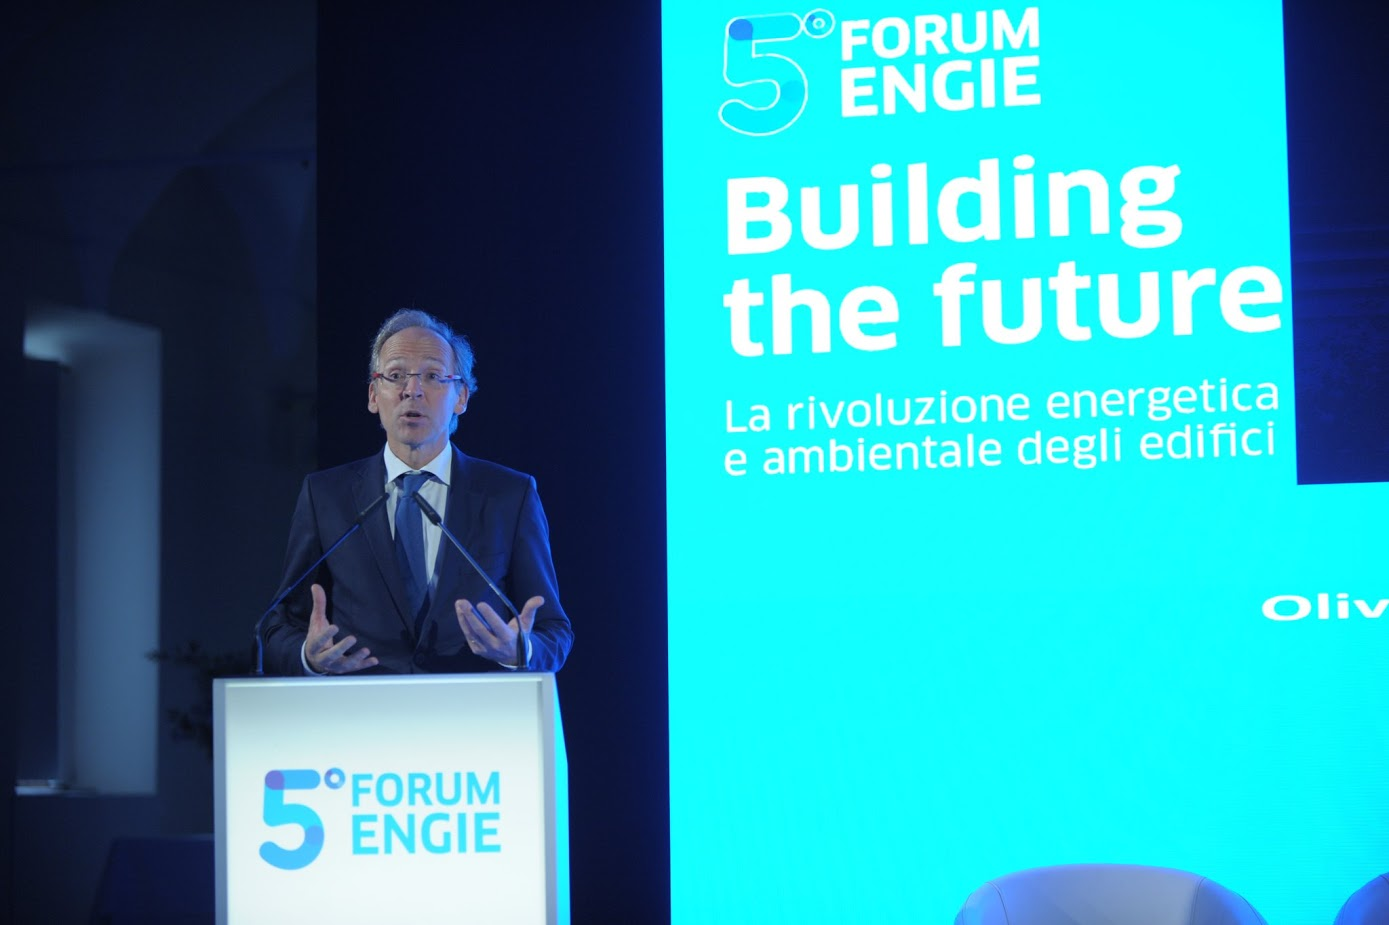 Efficienza energetica - Photo credit: Engie